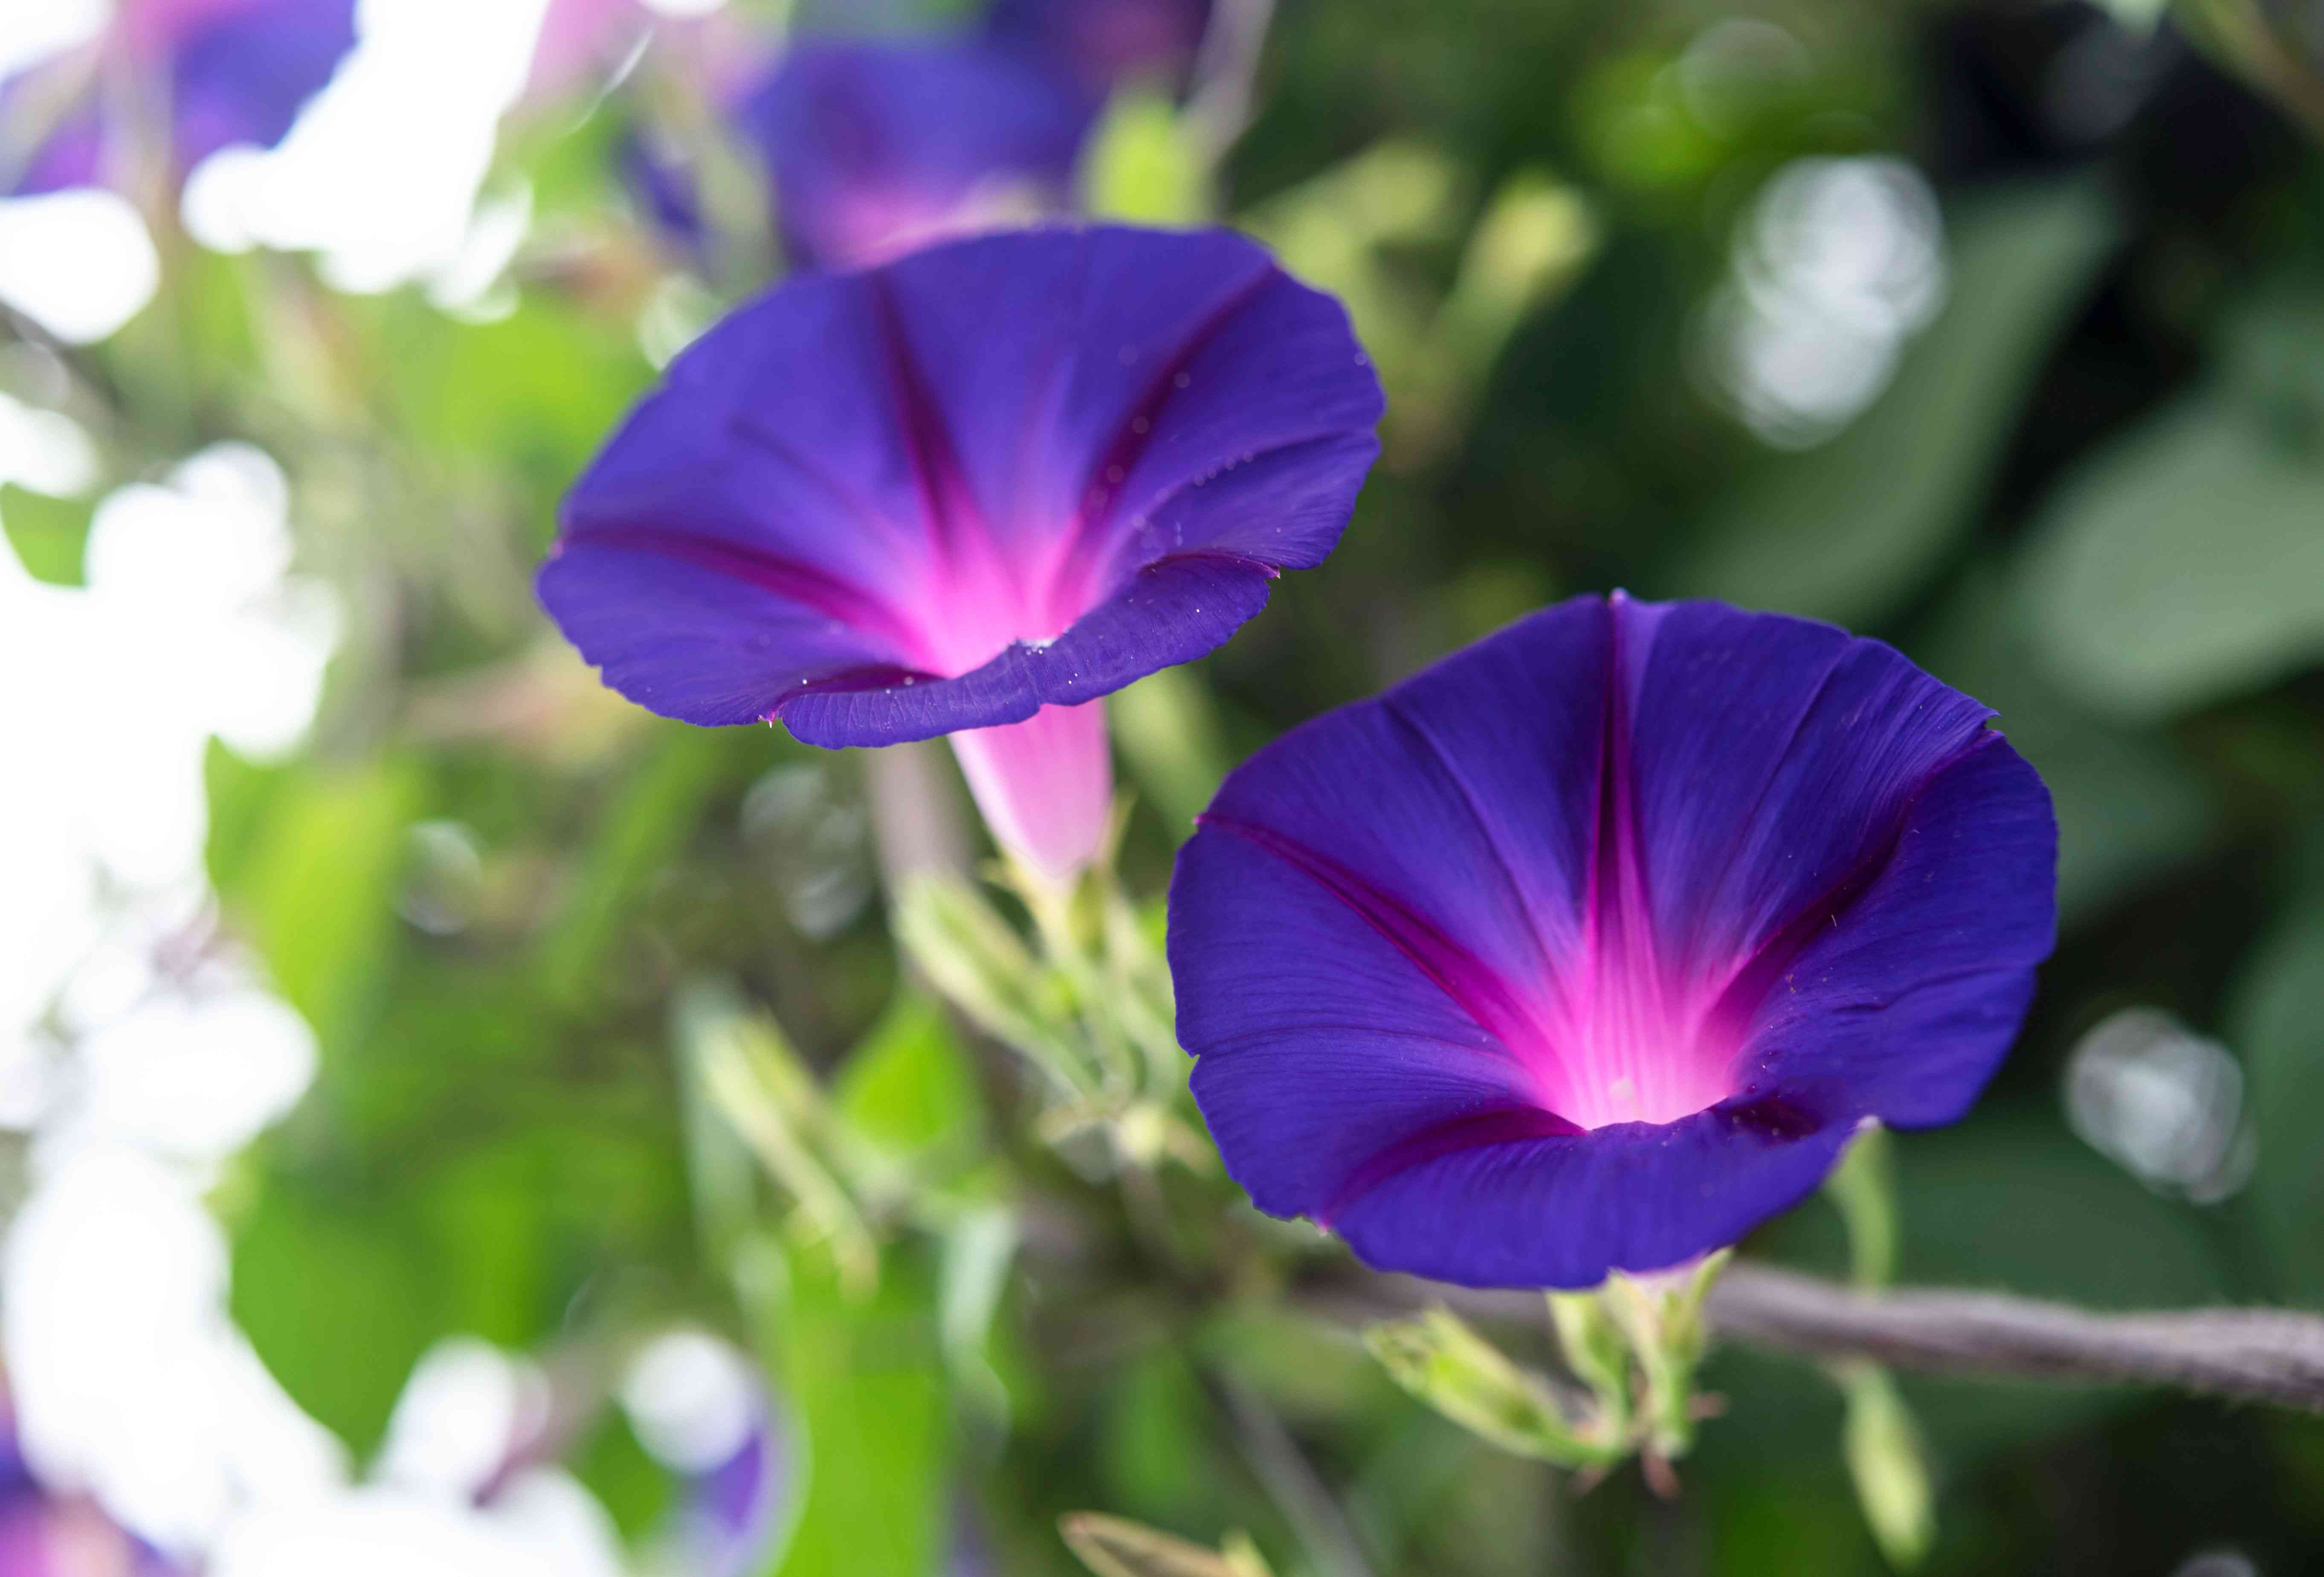 Morning glory plant with deep purple trumpet-shaped flowers with pink centers